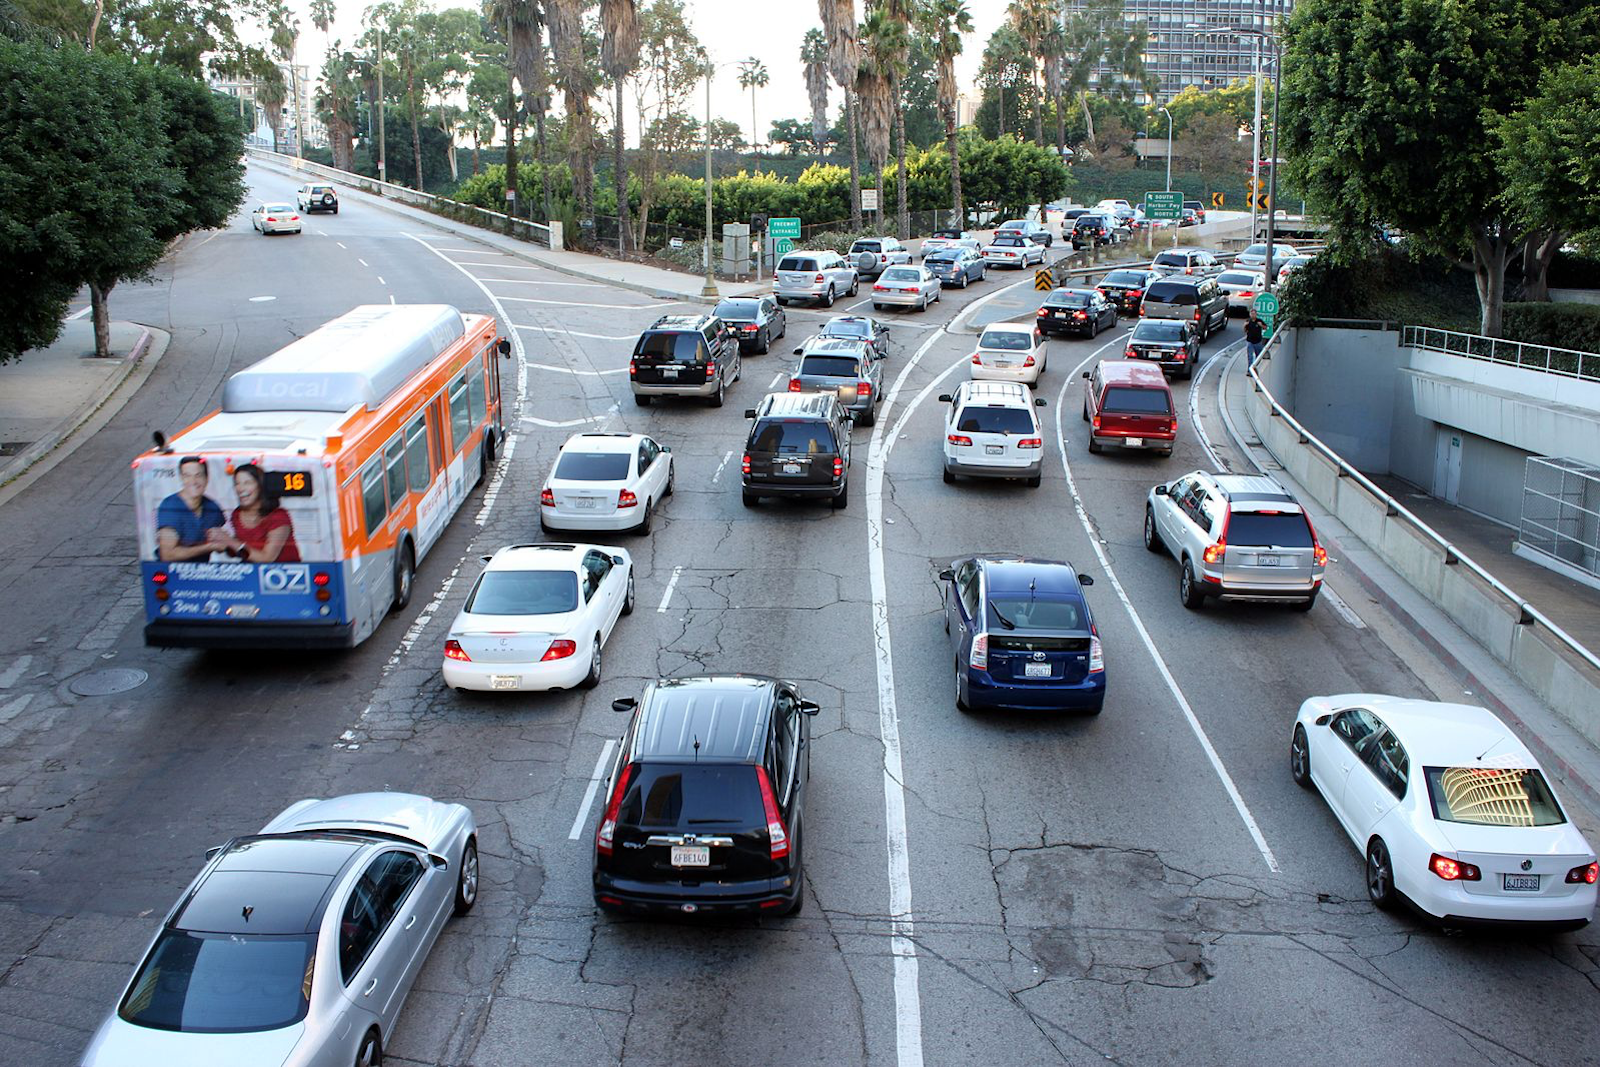 LA Traffic jam - daily occurrence